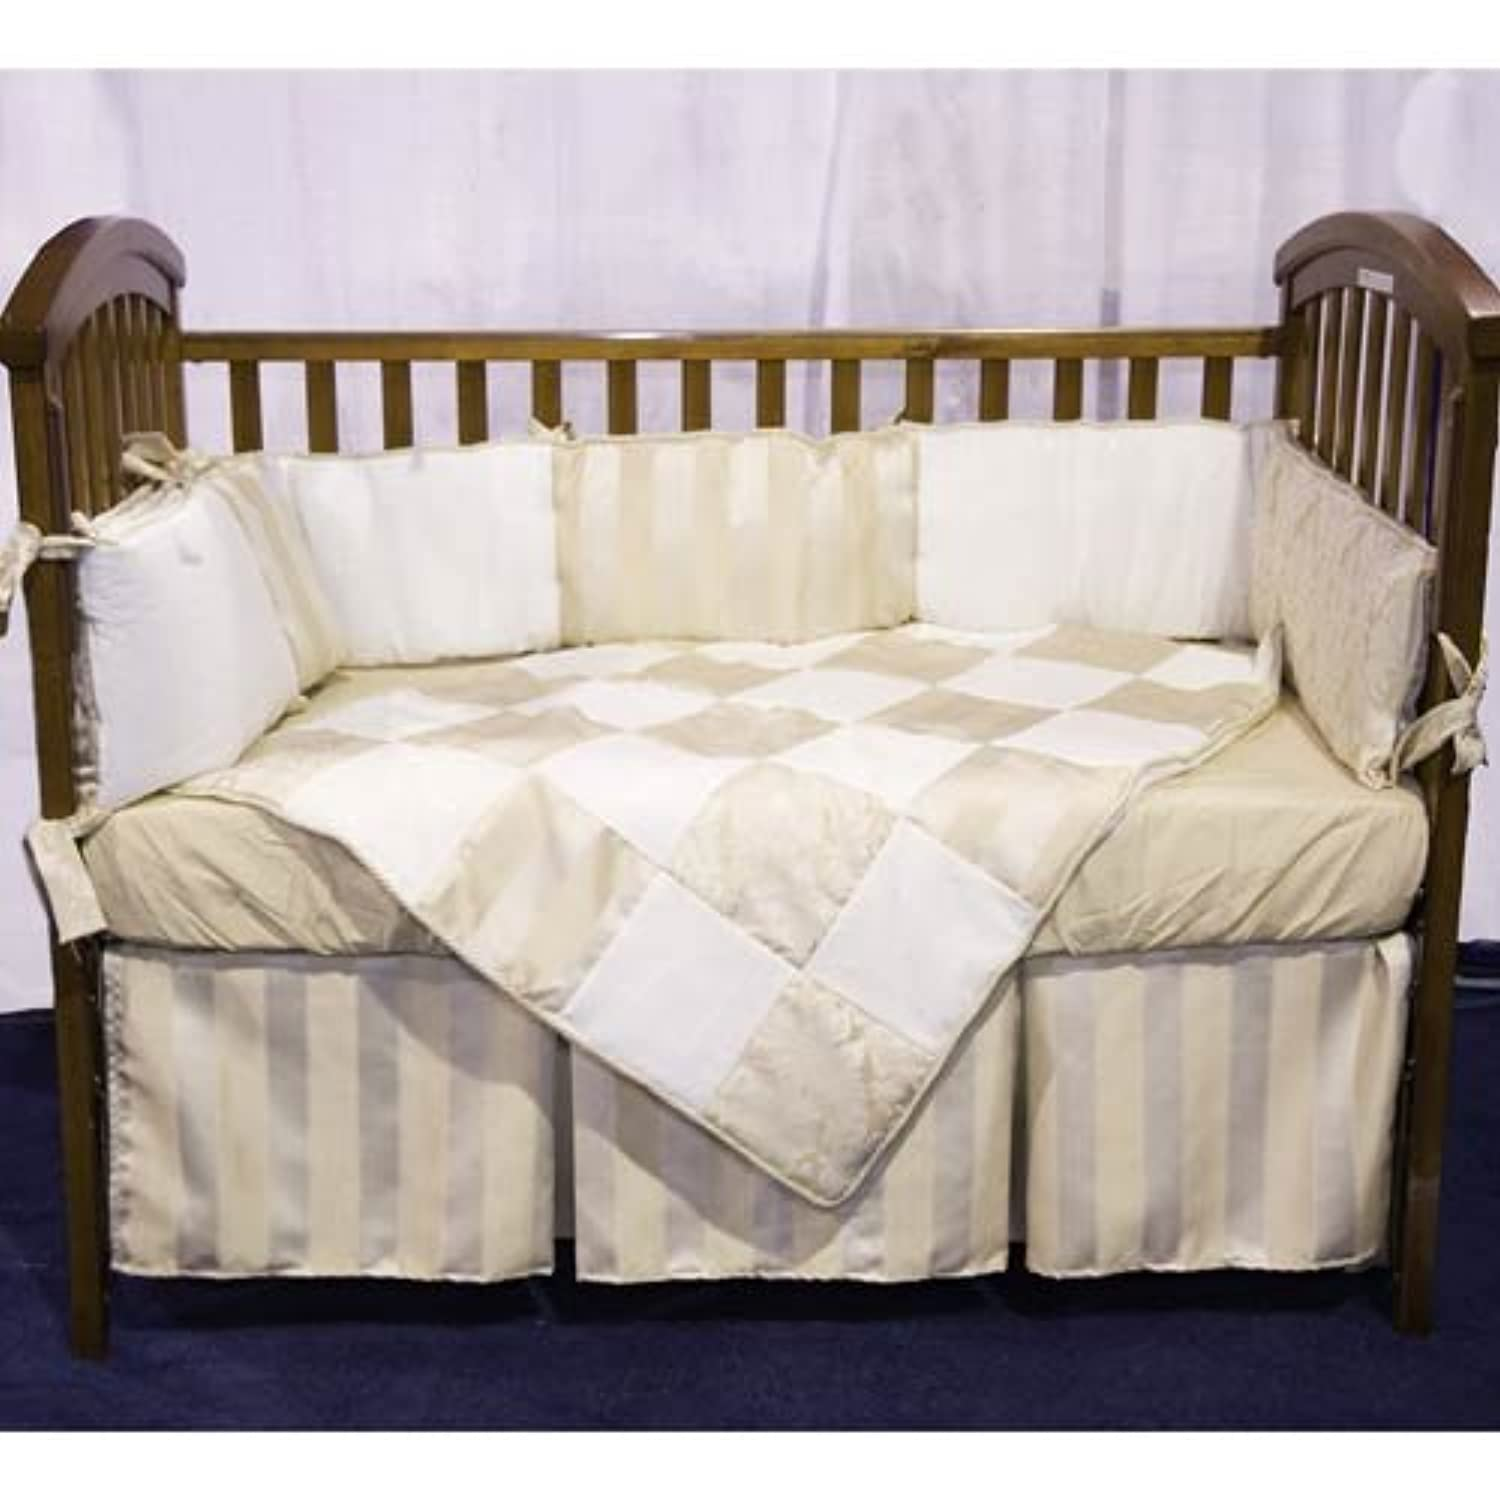 Baby Doll Bedding Gold Sensation Mini Crib/ Port-a-Crib Set, Gold by BabyDoll Bedding